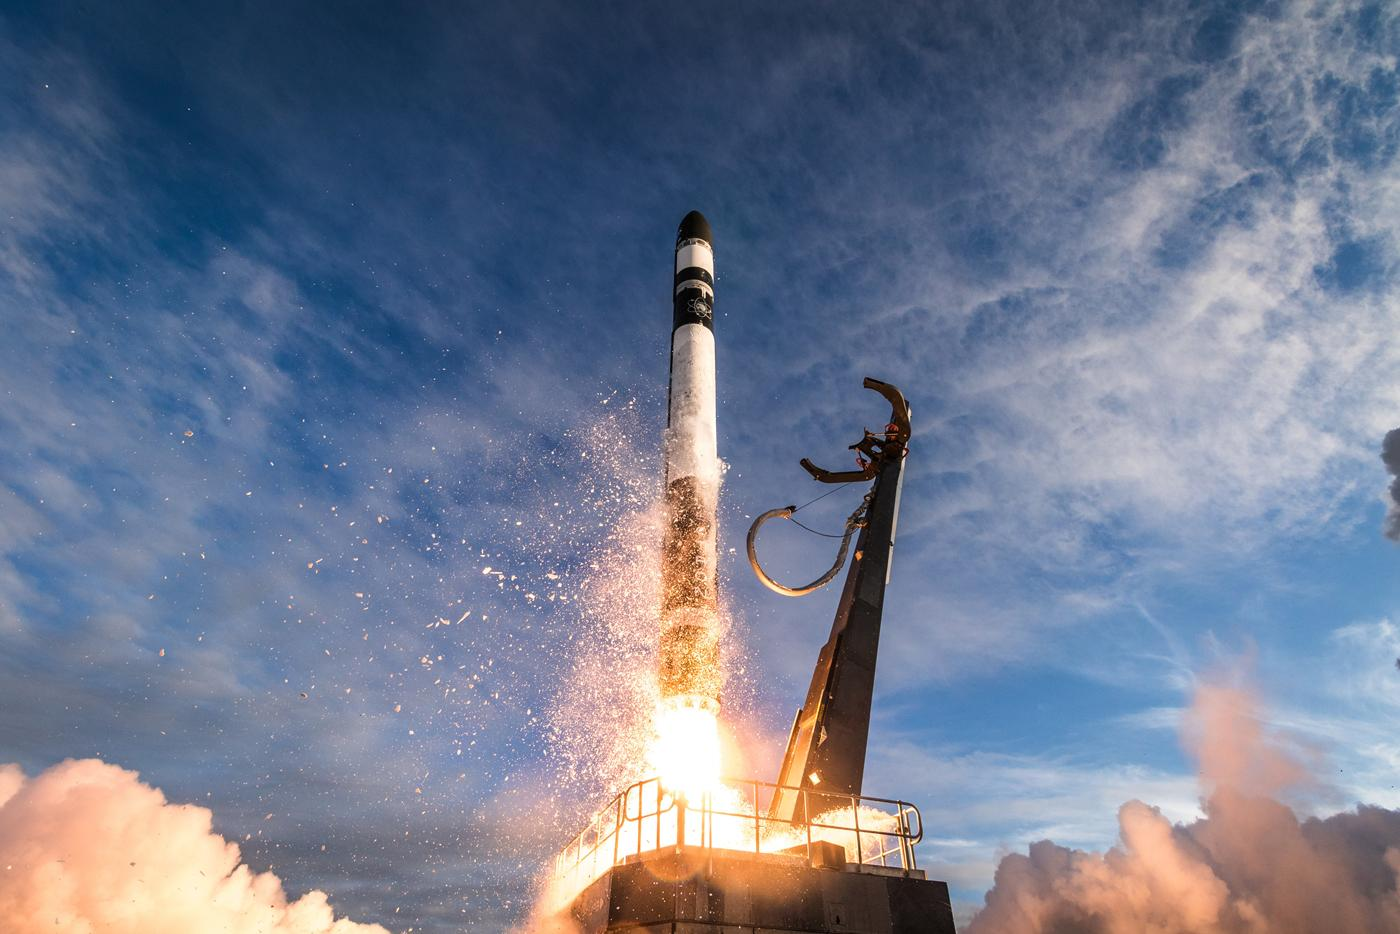 Rocket Lab specializes in launching small satellites into space